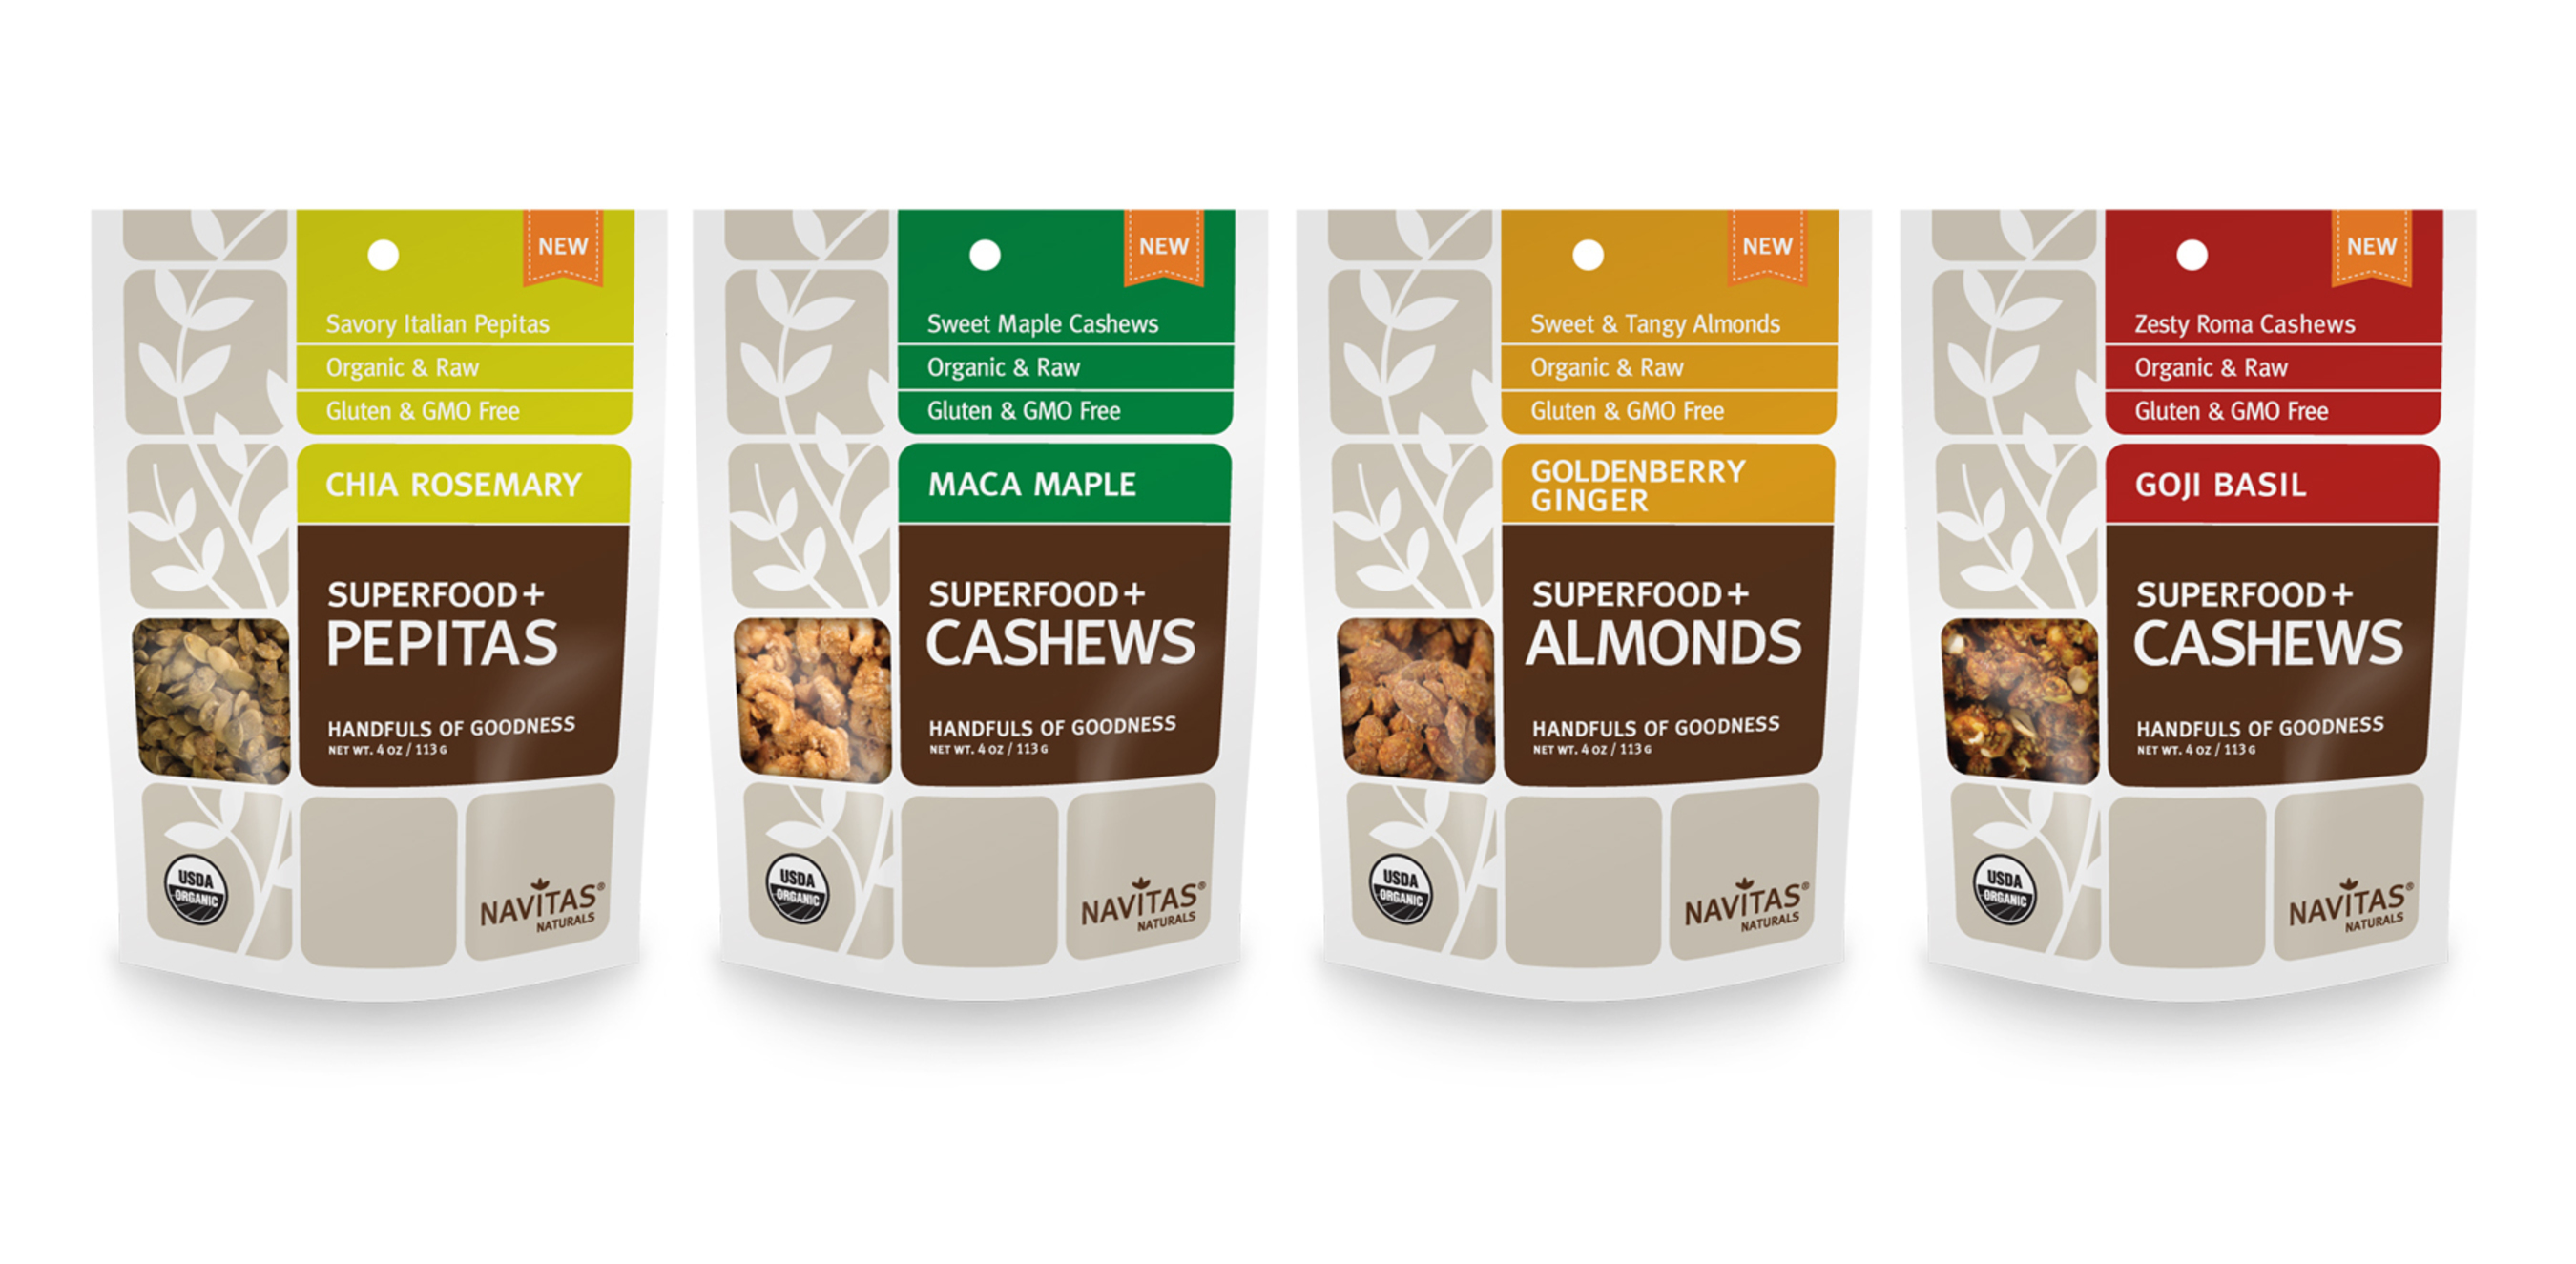 Superfood Seeds and Nuts are 4 varieties of nutrient-dense snacks from Navitas Naturals that are ideal for on-the-go lifestyles. (PRNewsFoto/Navitas Naturals)